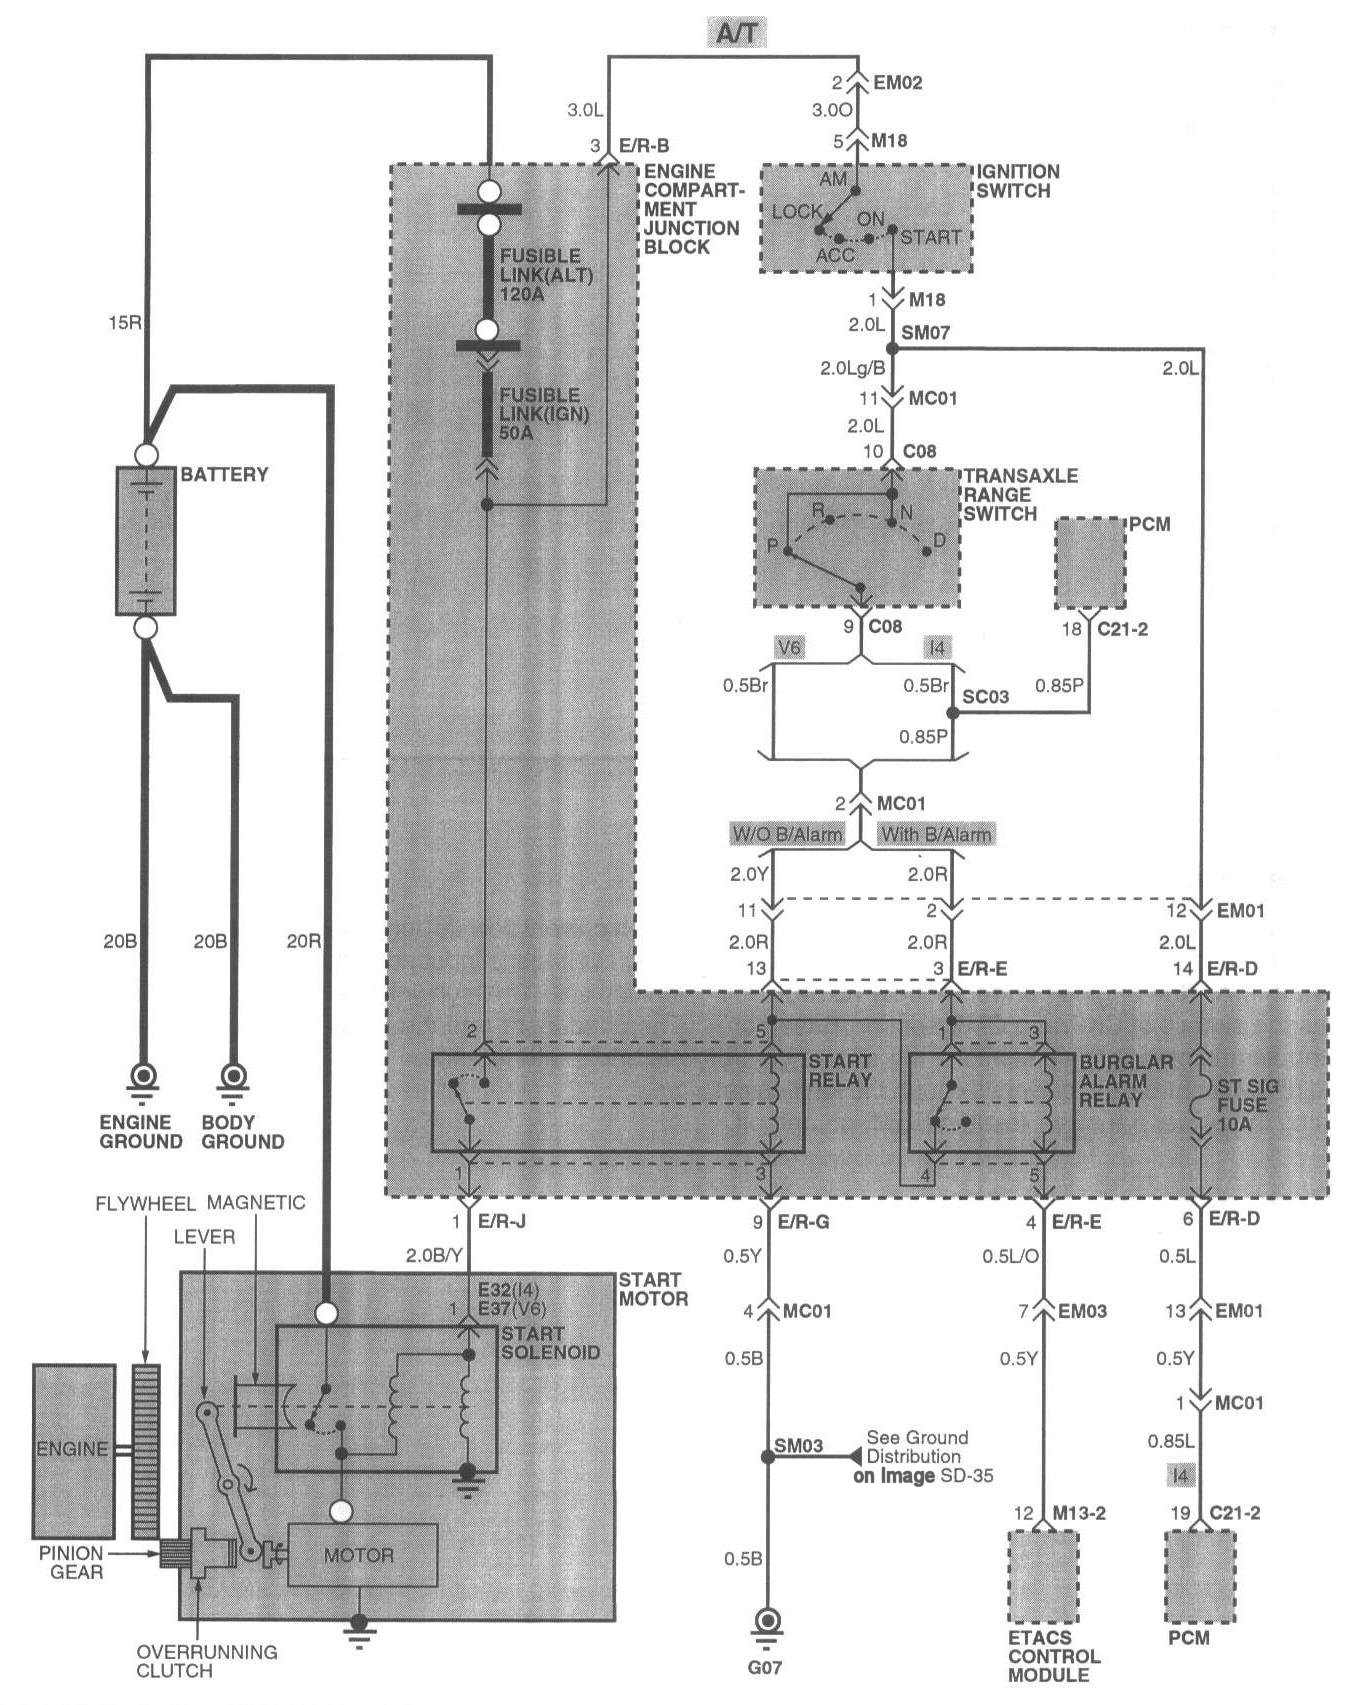 Hyundai Wiring Diagram Fan Worksheet And 2001 Sonata 2004 Santa Fe Cooling Library Rh 2 Codingcommunity De